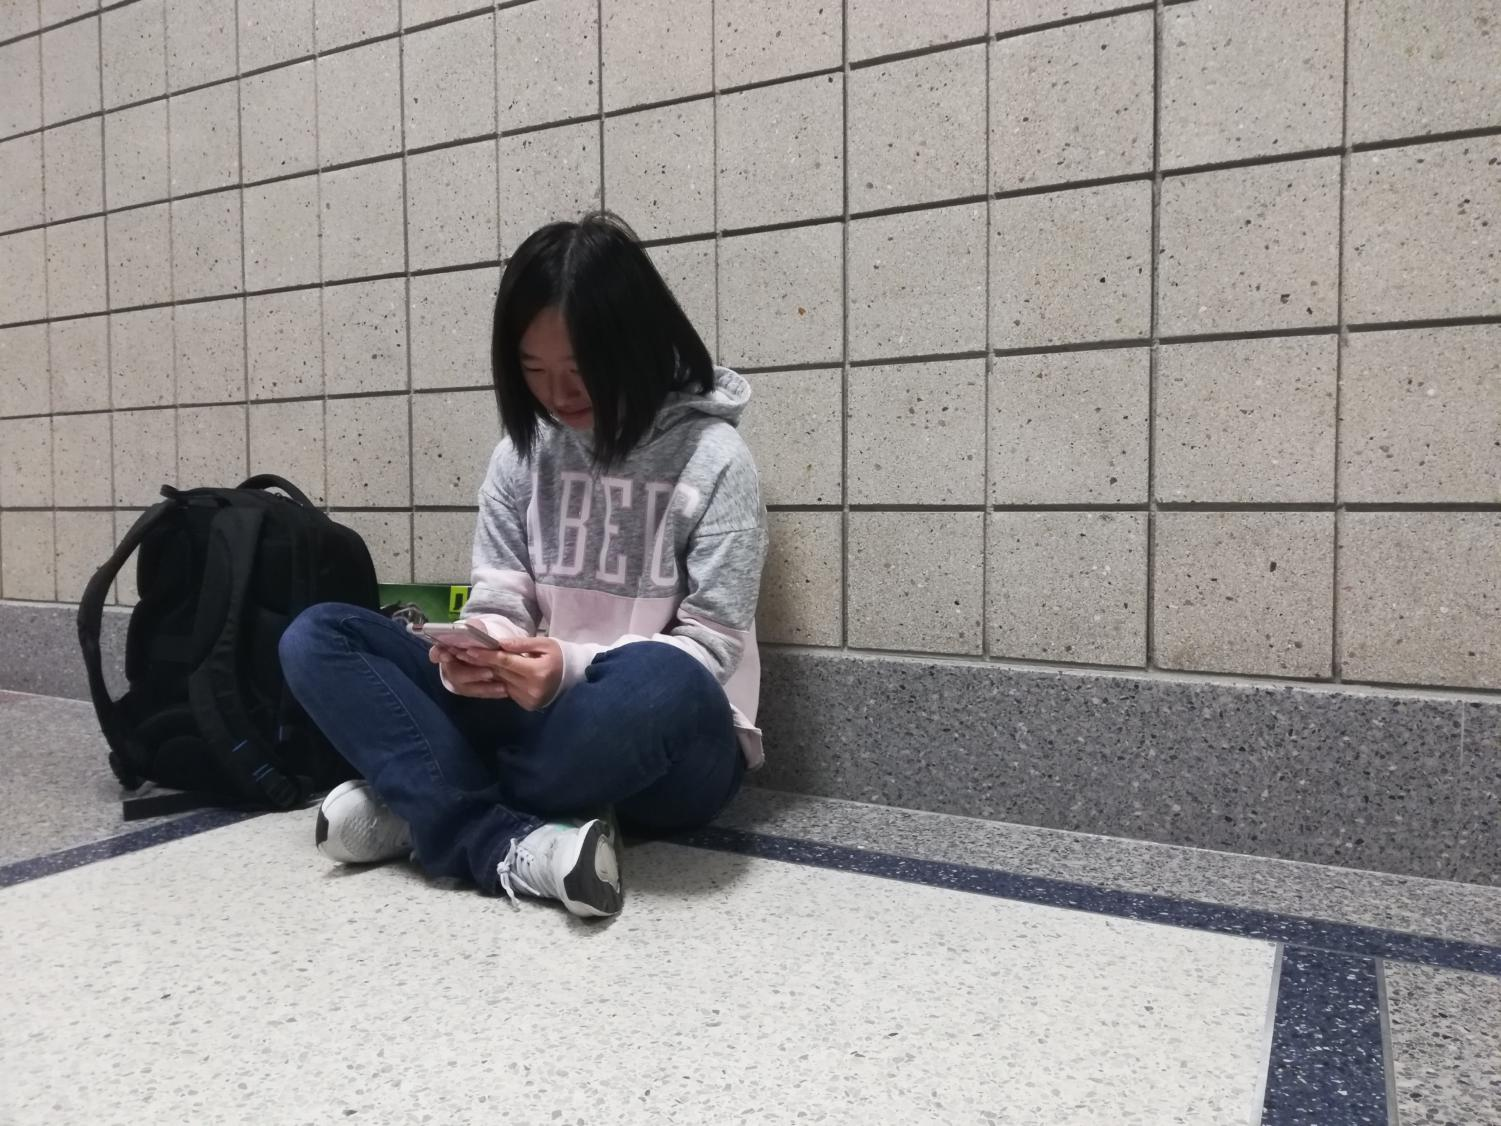 Sophomore Eliana Jin looks at her phone to read the email Melinda Stephan, college and careers programming and resources coordinator, sent out about the upcoming Business Majors and Careers Fair. According to Stephan, the fair will be on Nov. 19 in the Freshman Center cafeteria from 6:30 to 8 p.m.